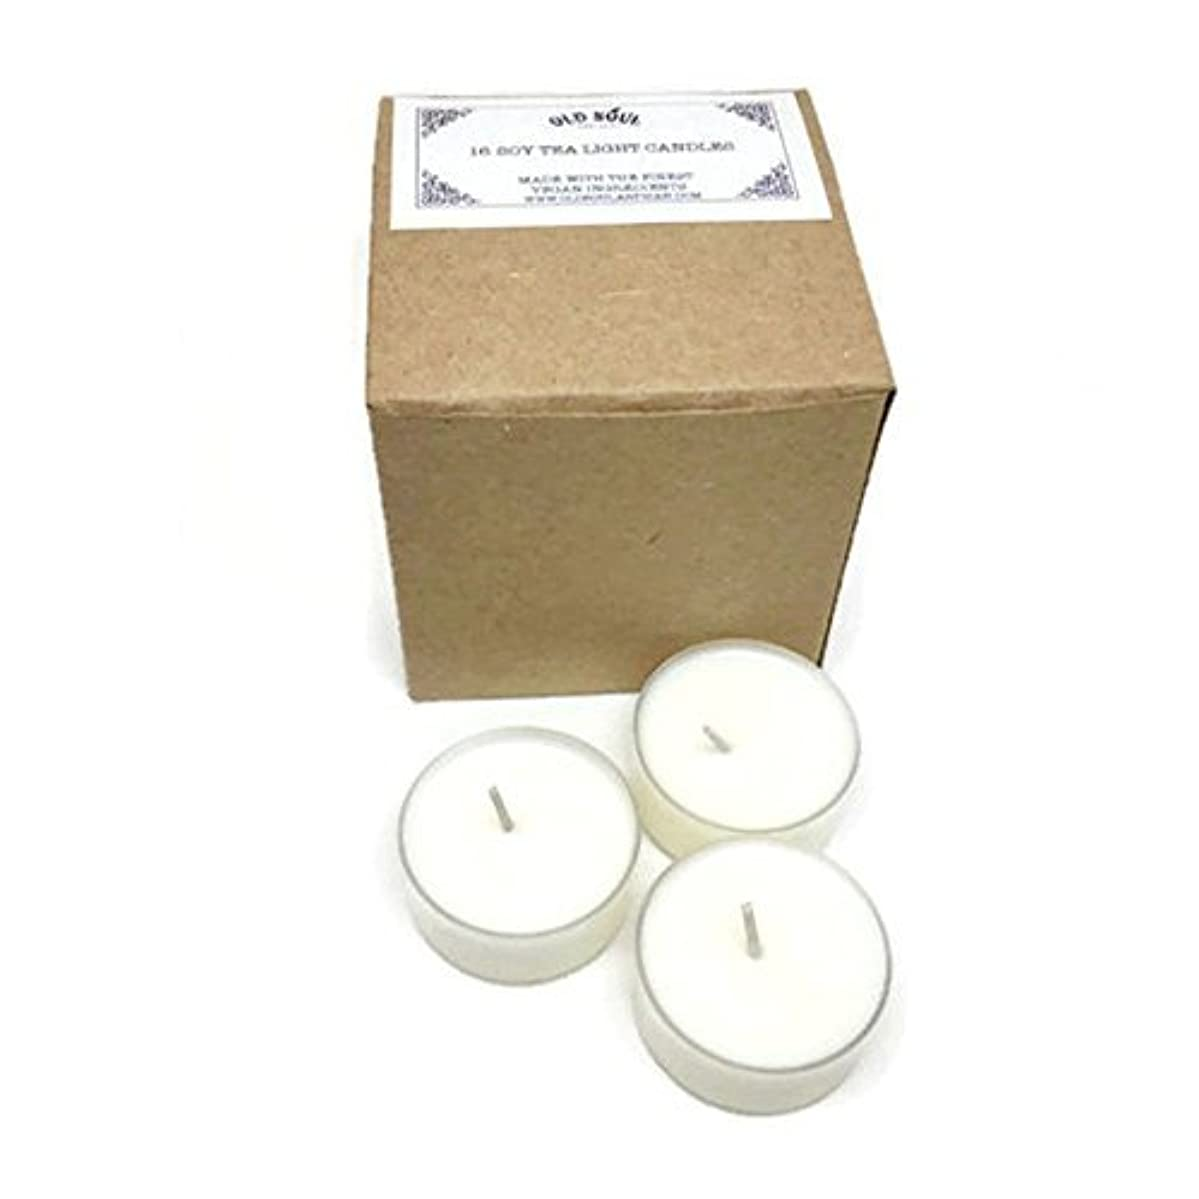 非難吹きさらしゴミ箱Egyptian Amber Scented Vegan Soy Tea Light Candles - 16 Box Set [並行輸入品]